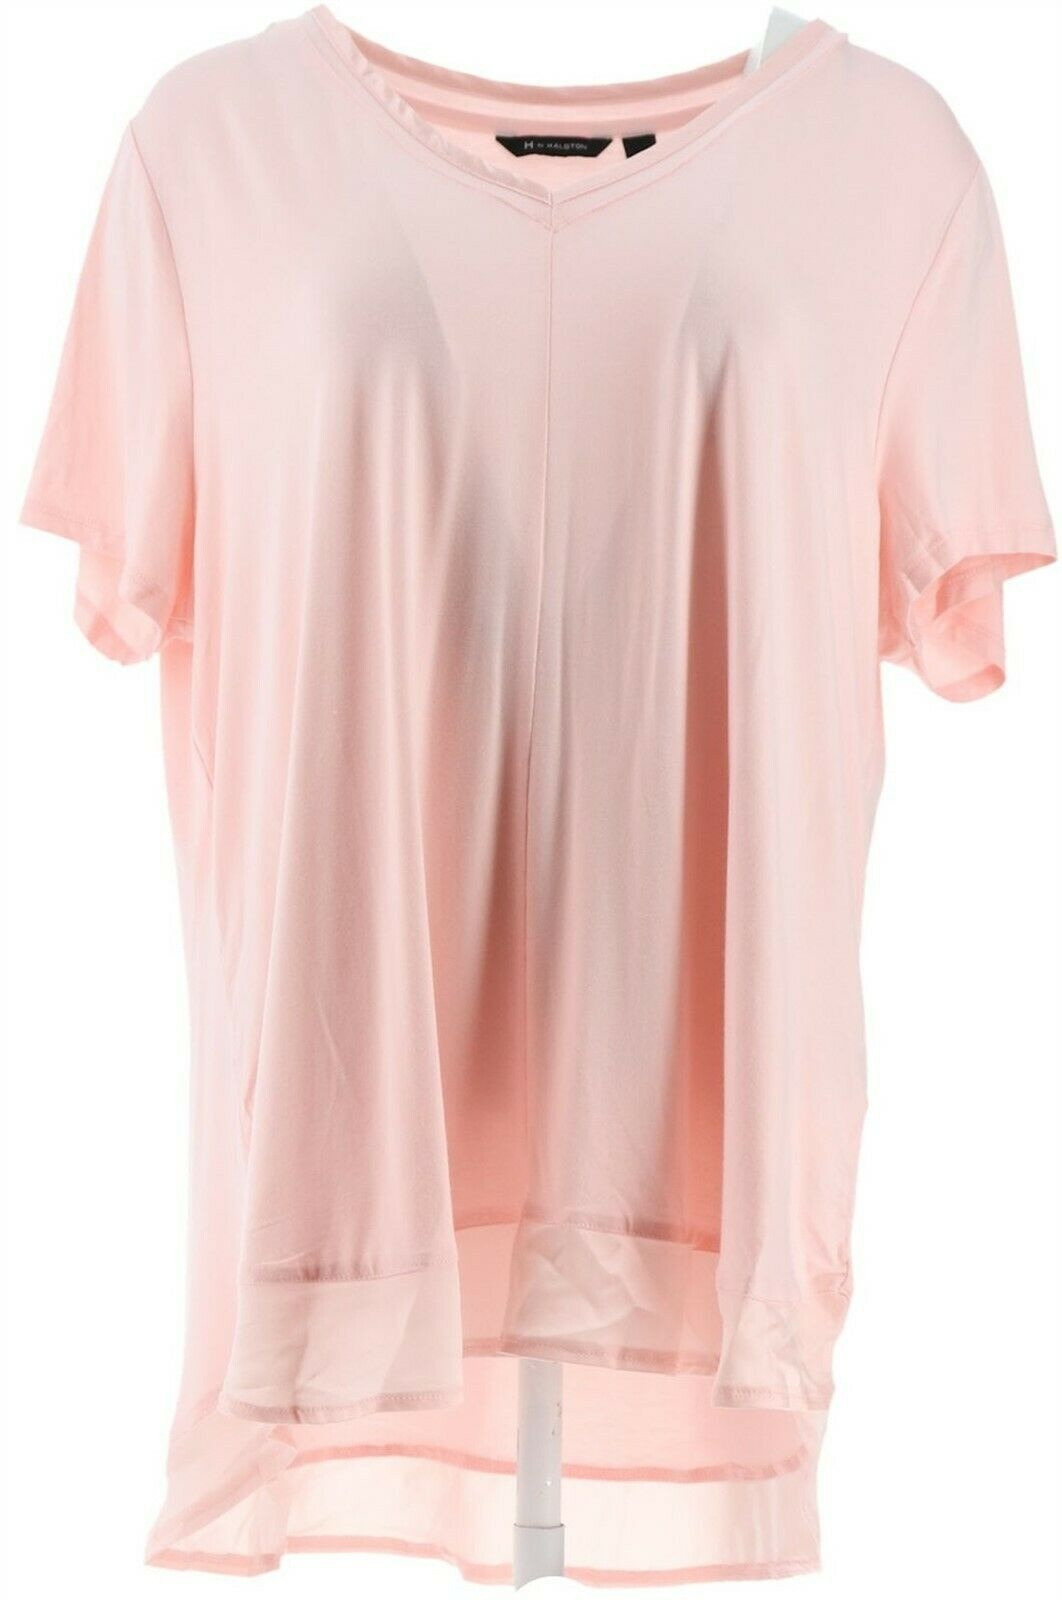 Primary image for H Halston Double Layer V-Neck Short-Sleeve Knit Top Pure Pink 1X NEW A353398